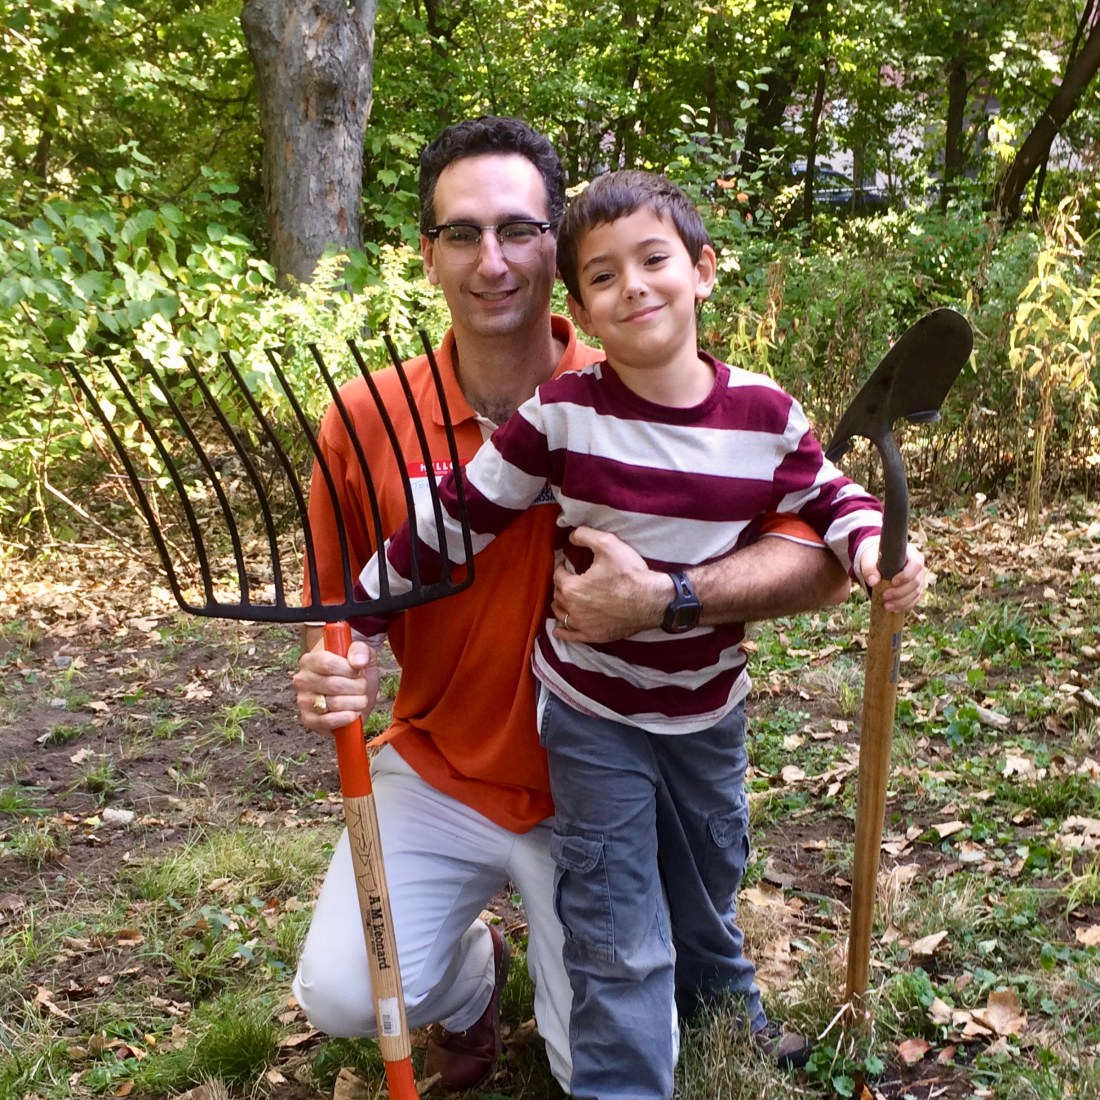 Tommy Vitolo with son at Halls Pond volunteer day